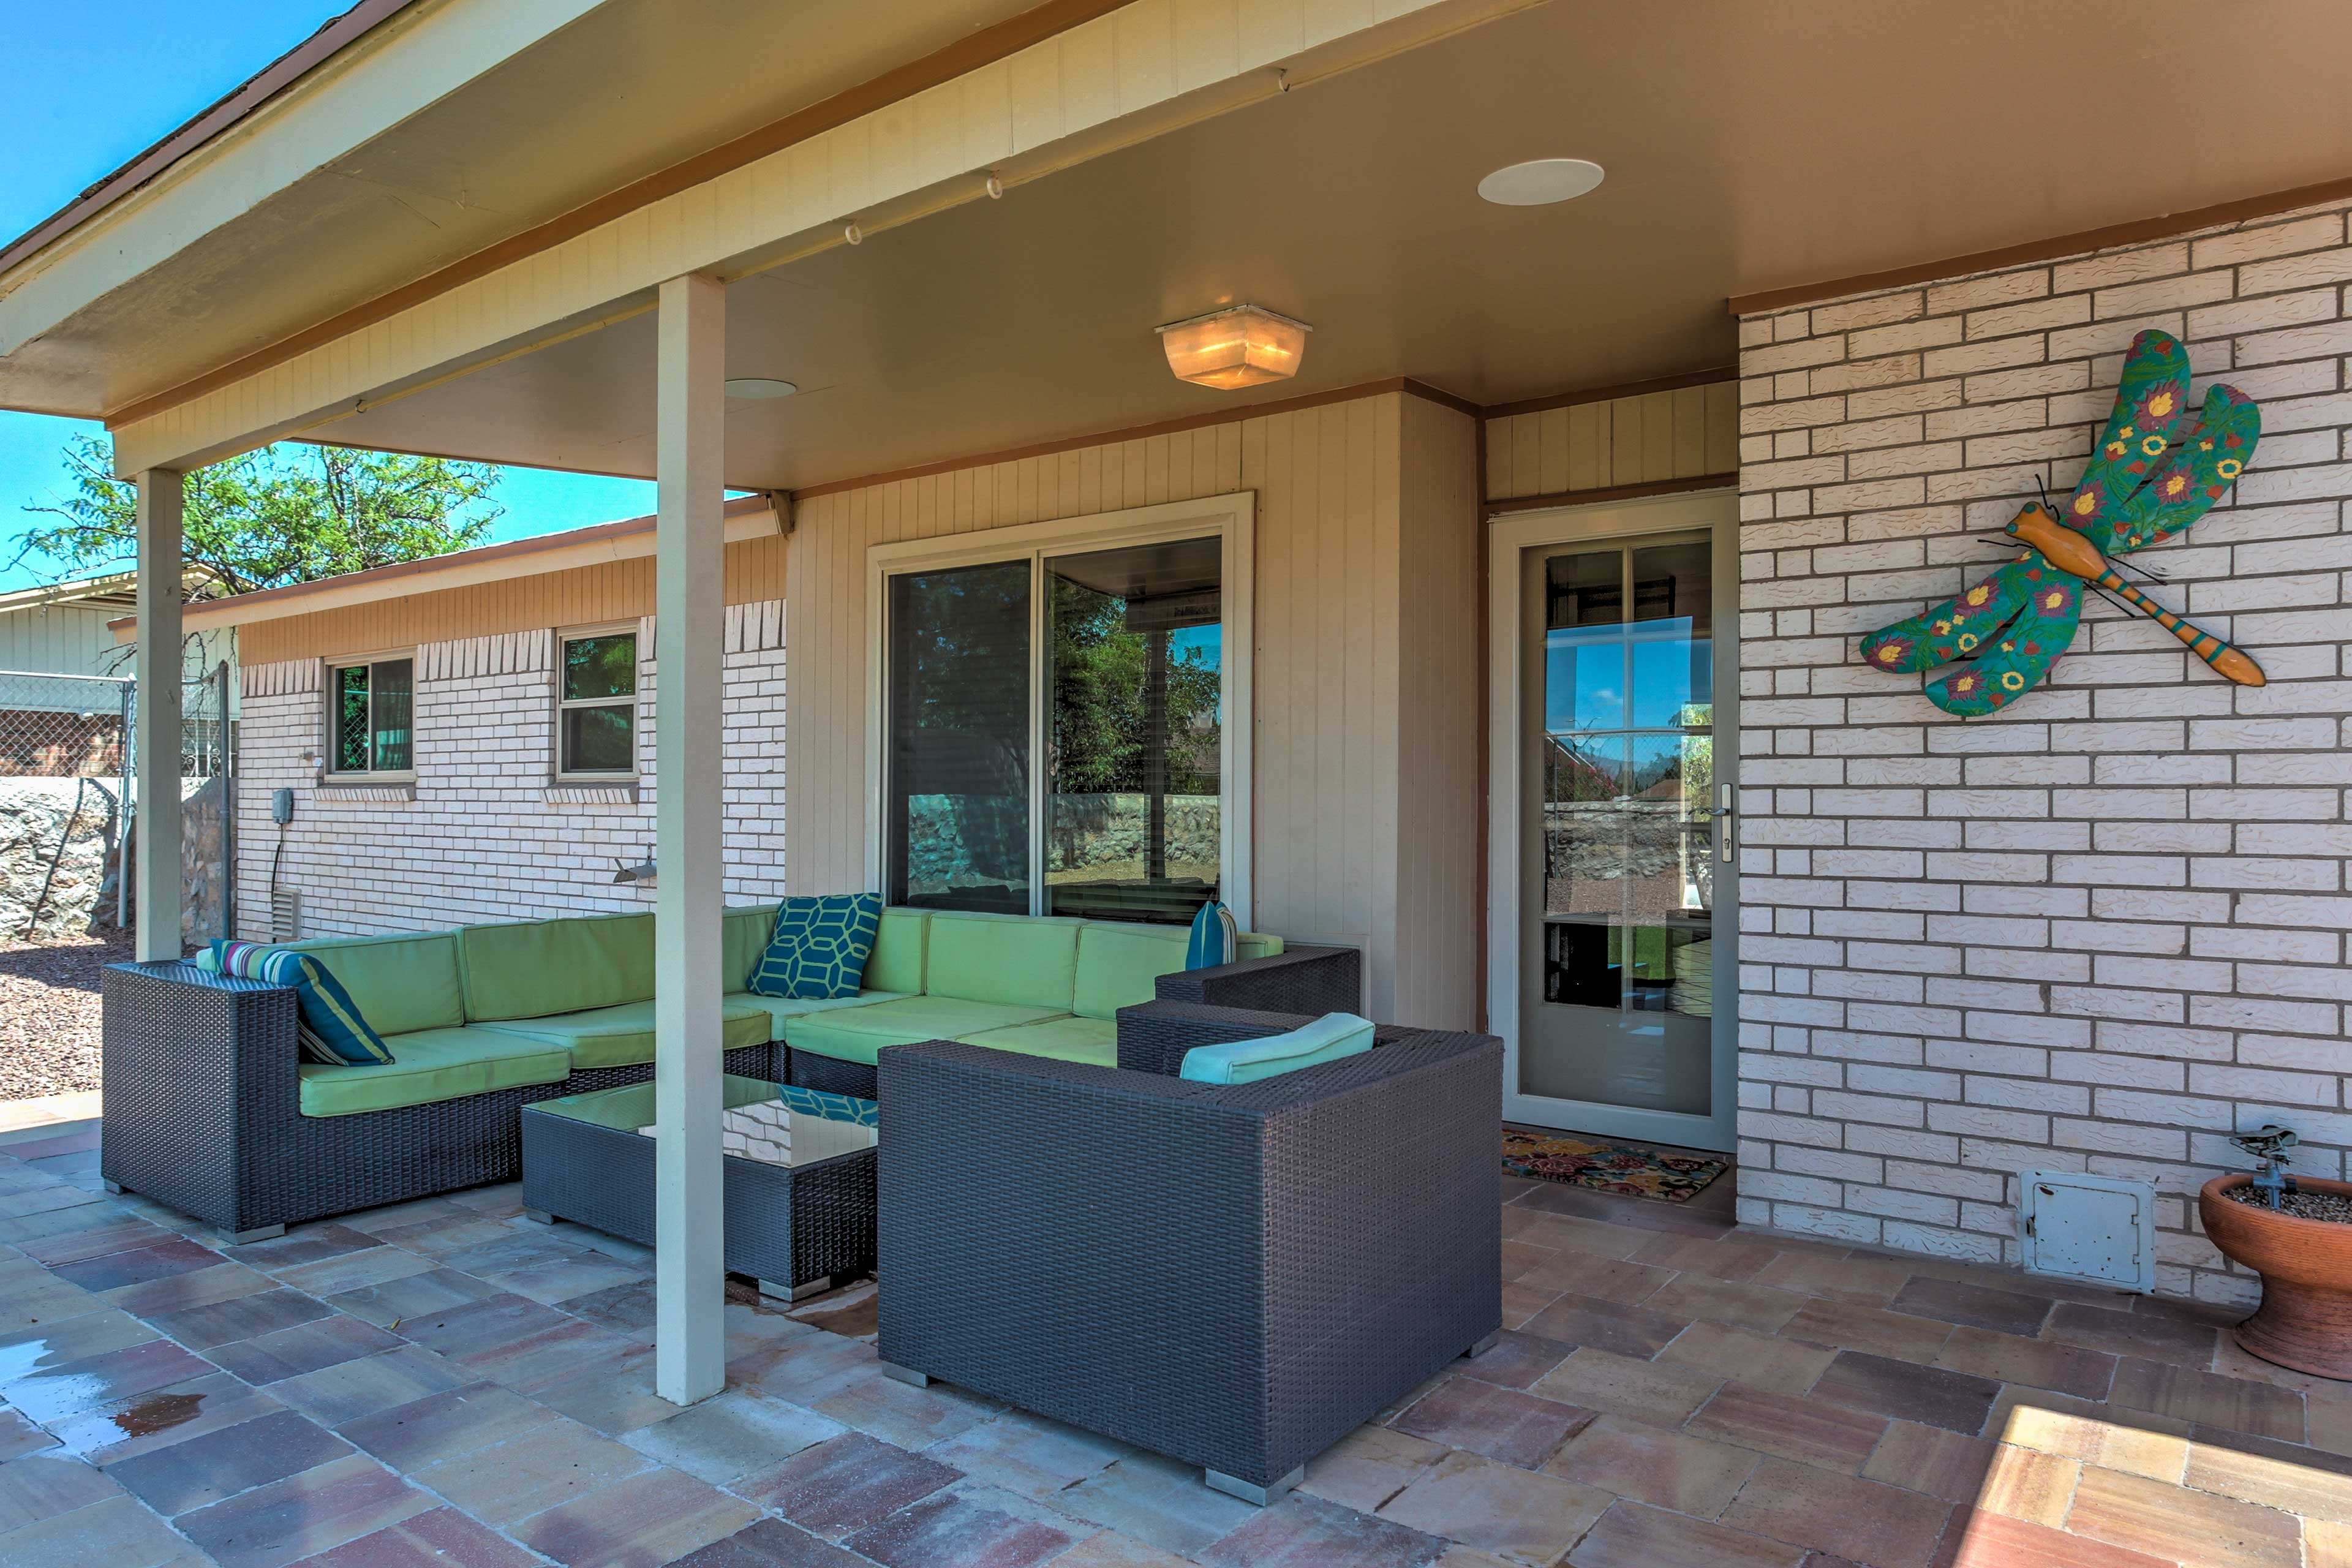 Enjoy the fresh air and a cool breeze on the covered patio.